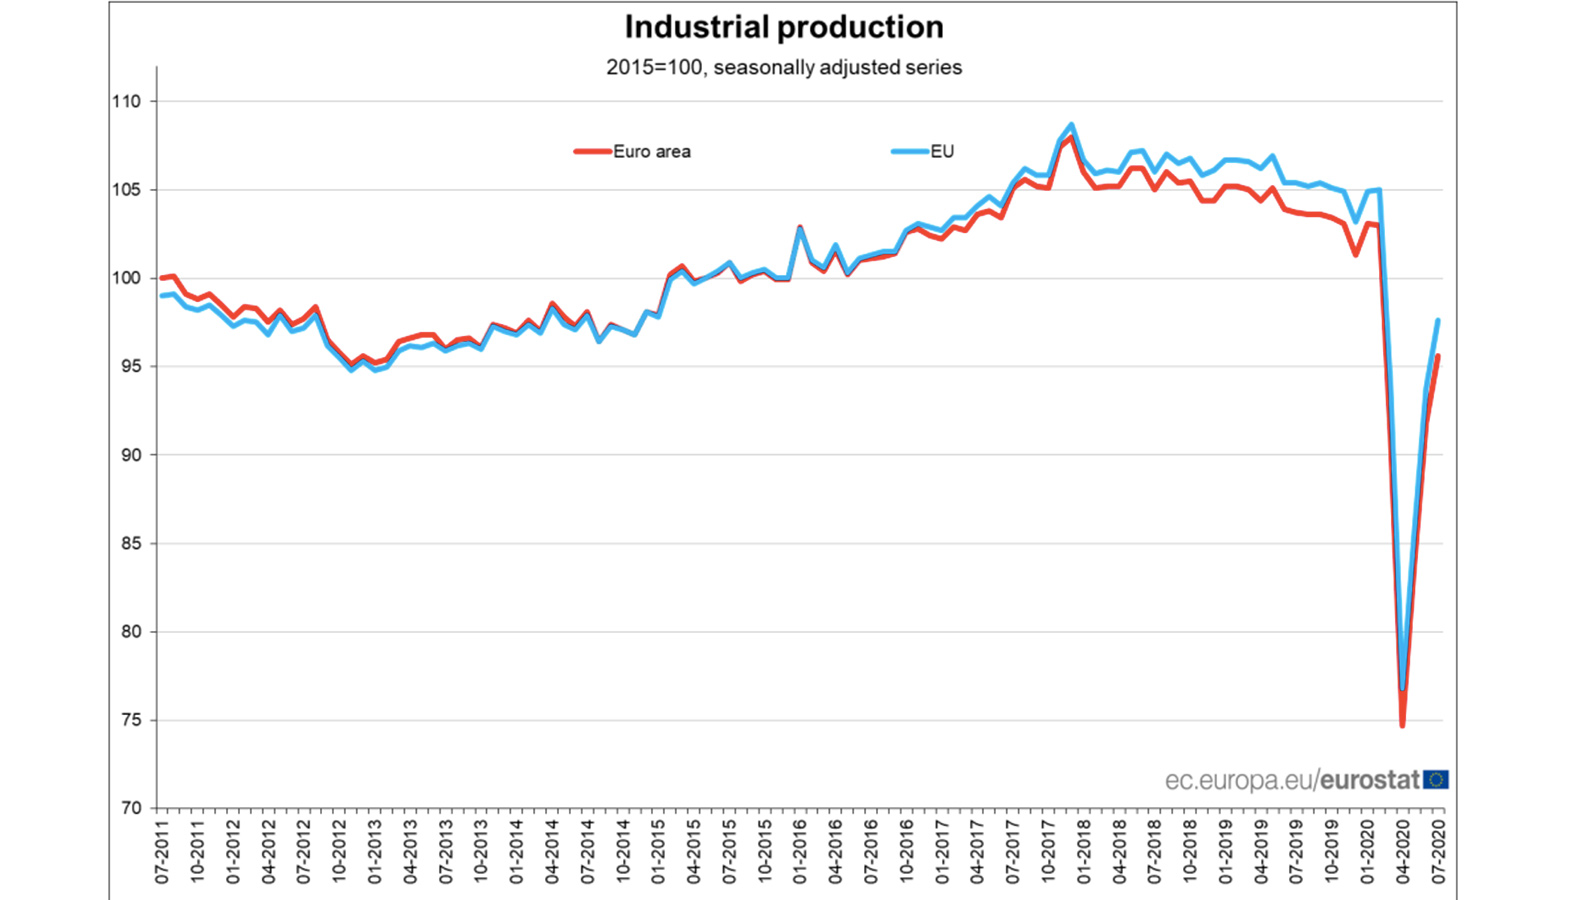 Industrial Production In The Eurozone In July 2020 Increased By 4.1% To June, Better Than Forecast